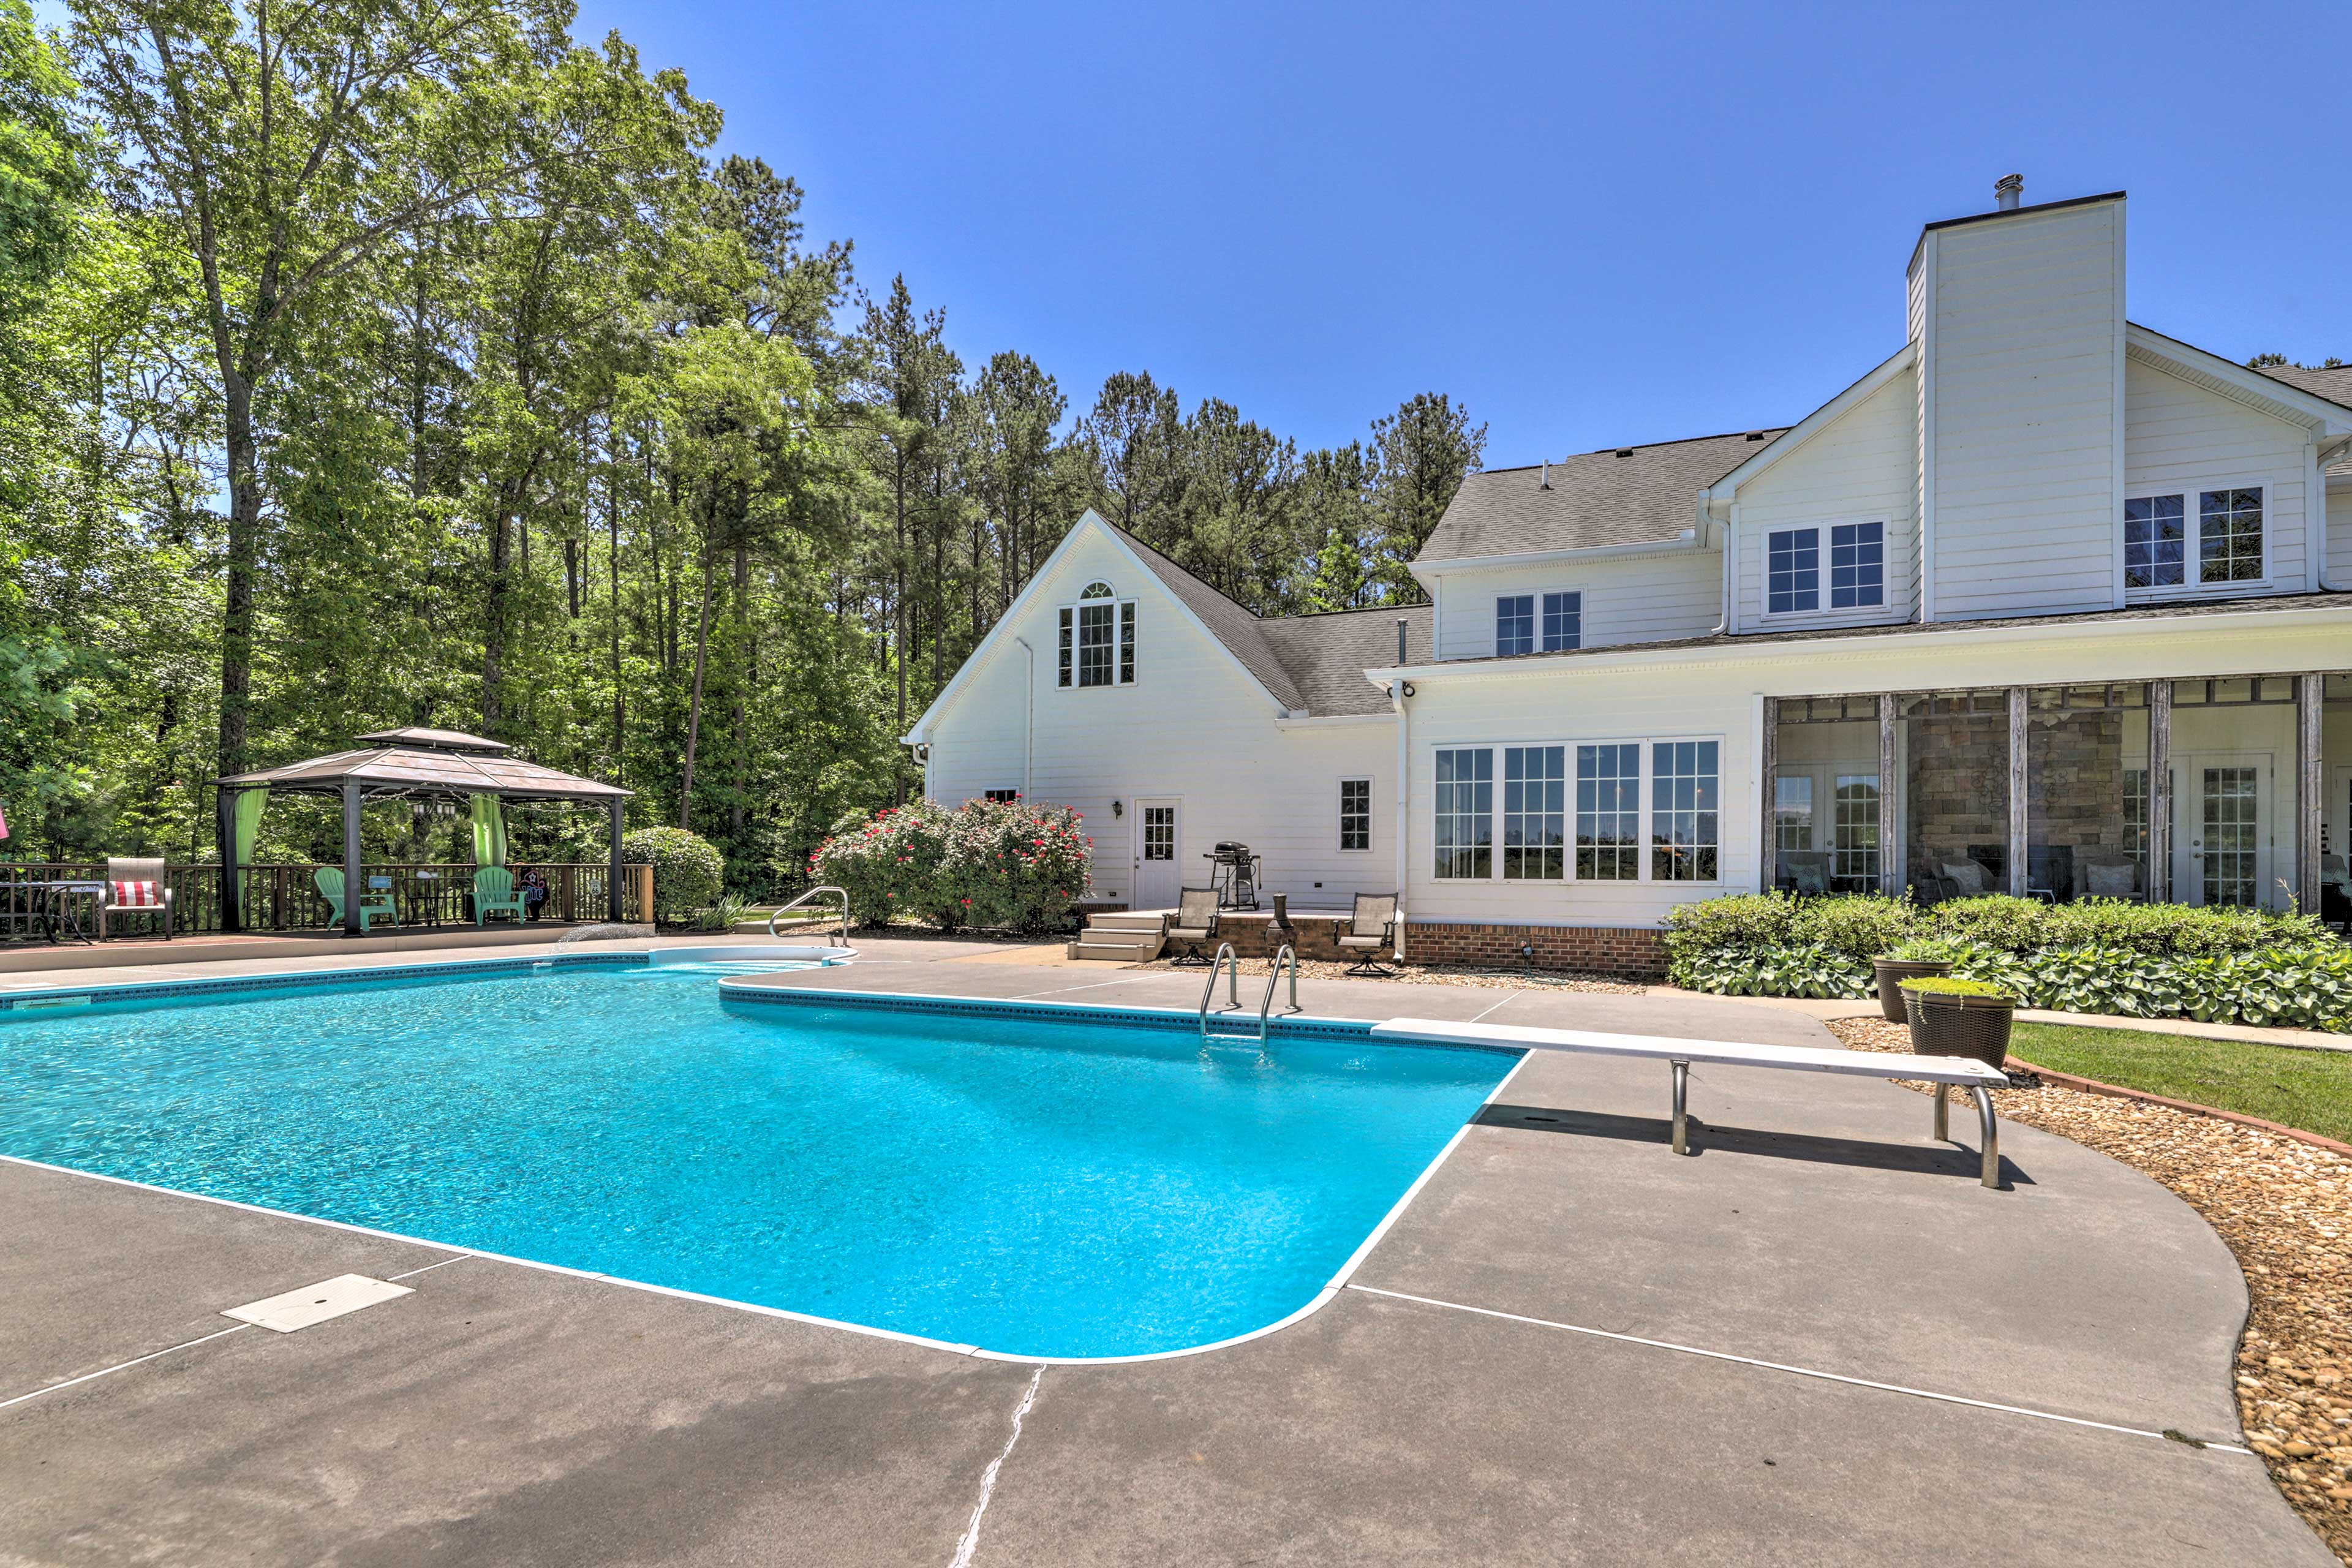 In the summertime, this private pool is sure to be a hit!